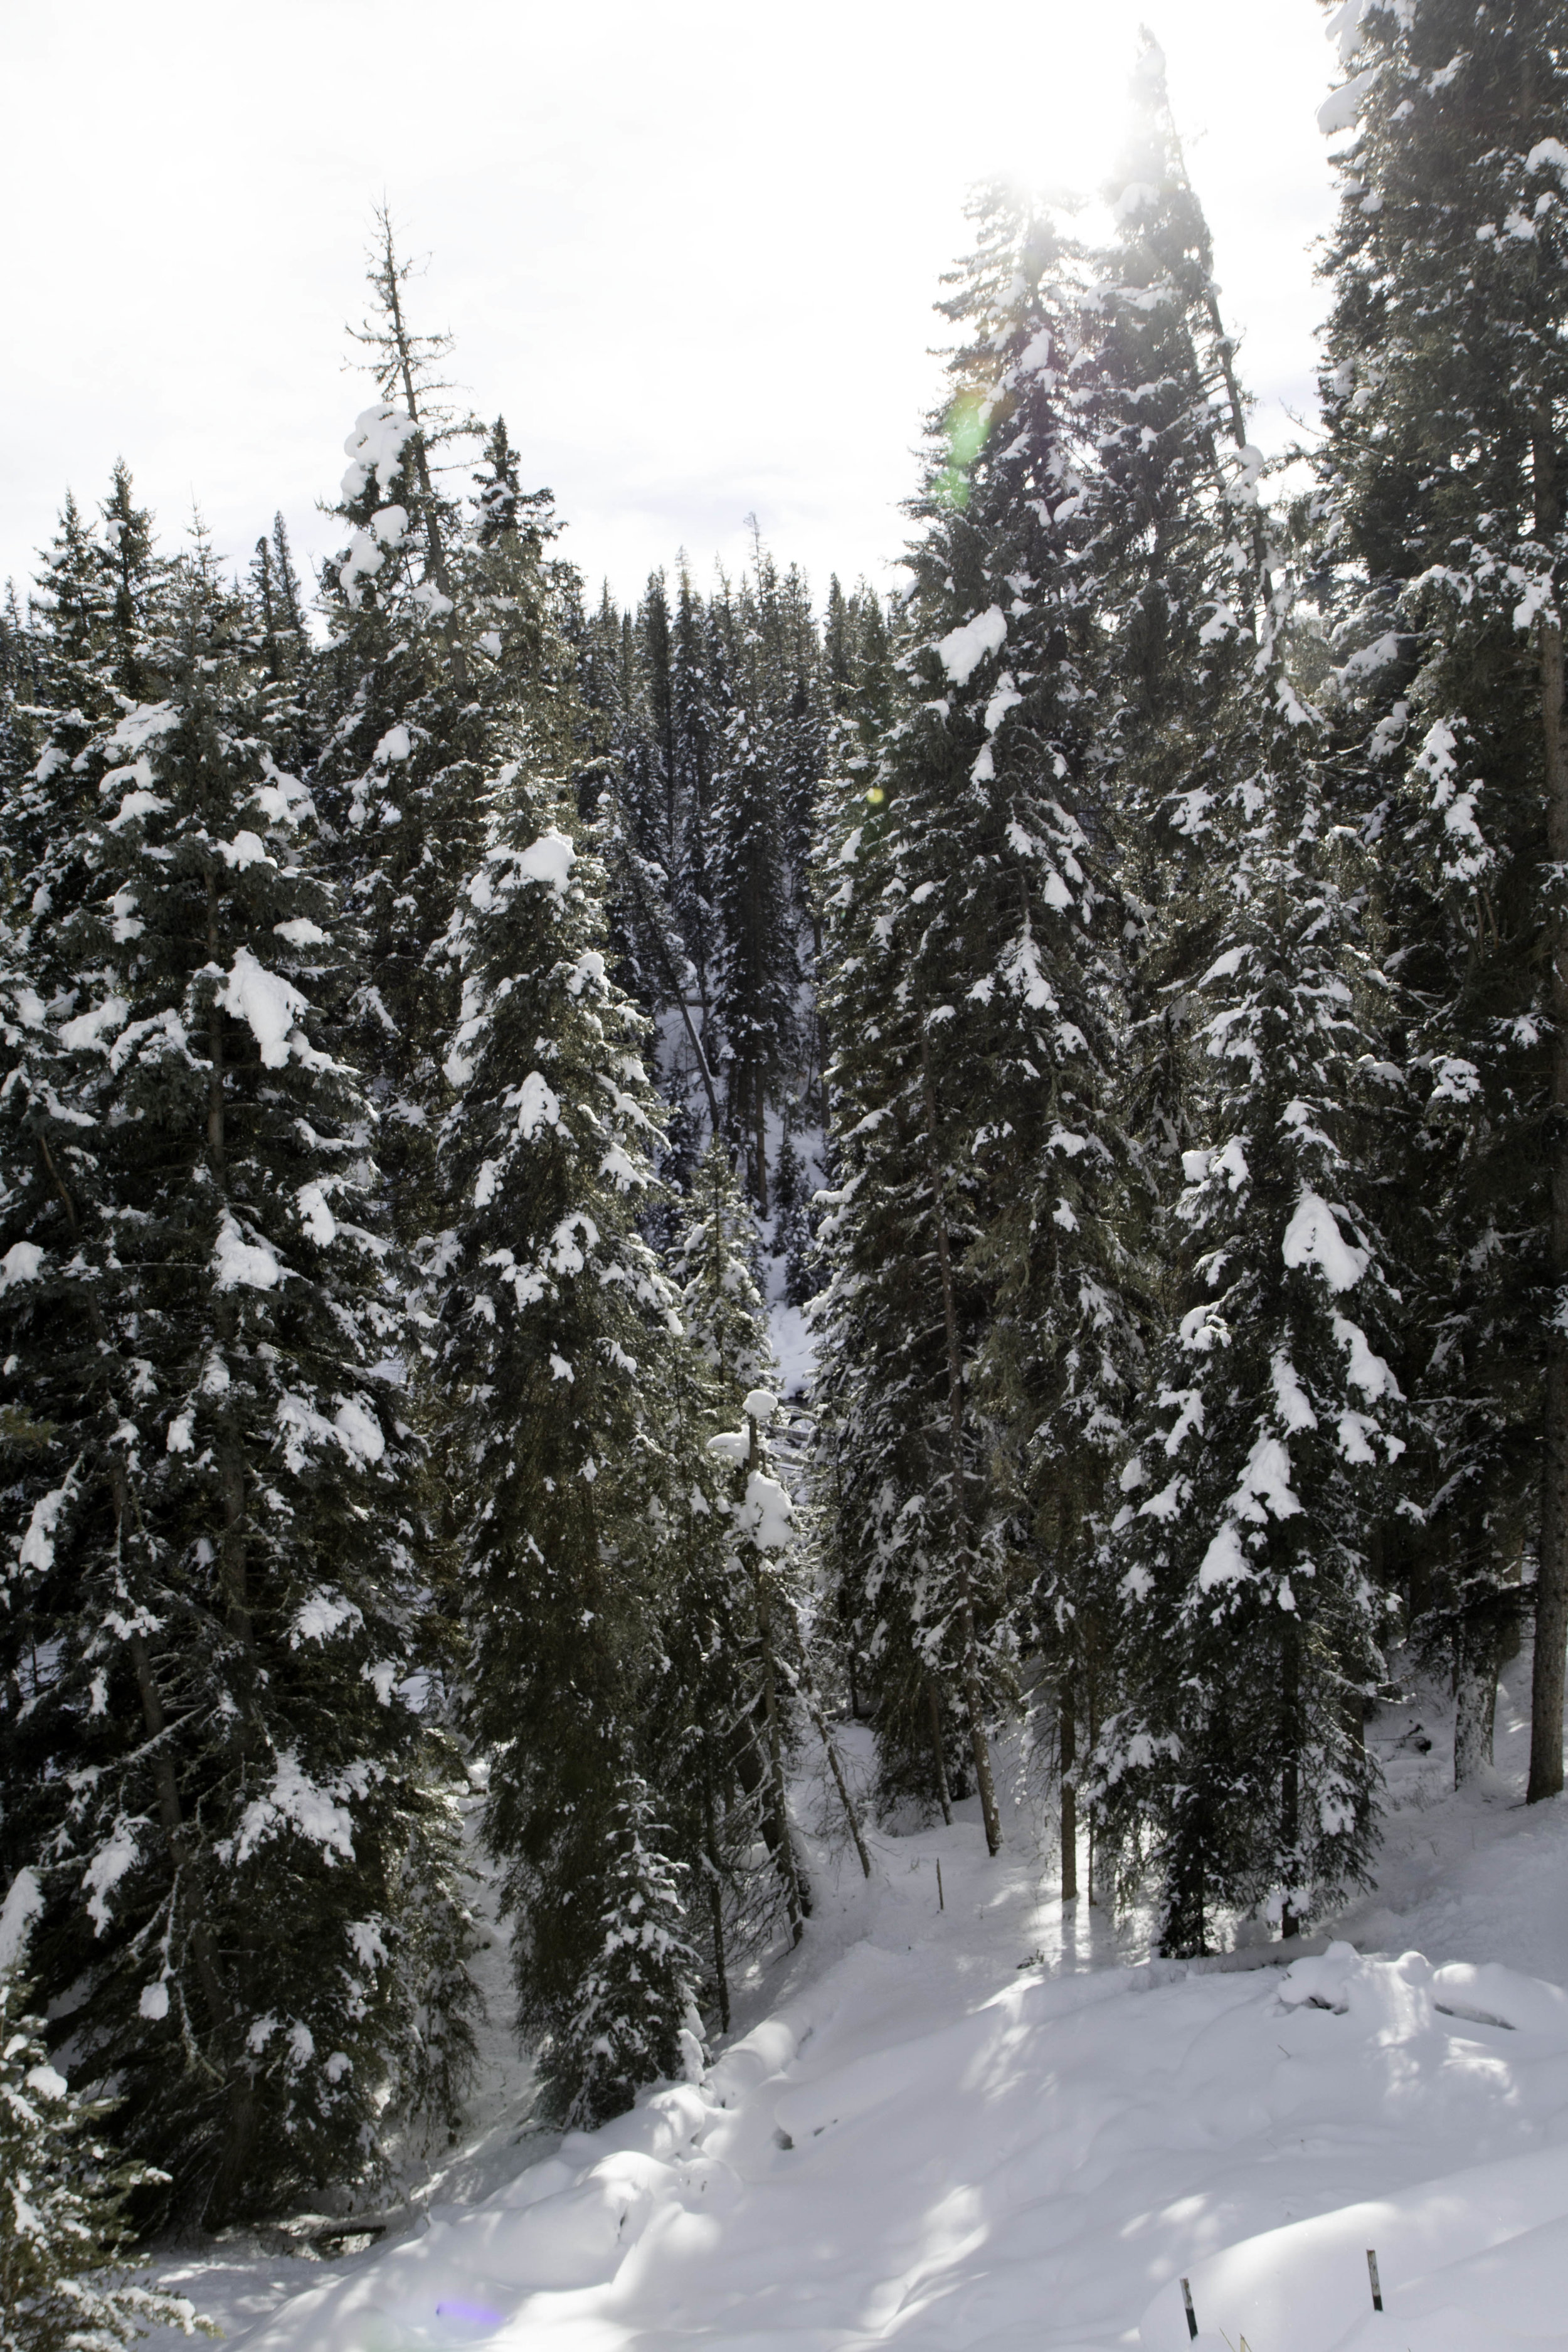 Hiking Ousel Falls Trail near Big Sky Montana in the Winter